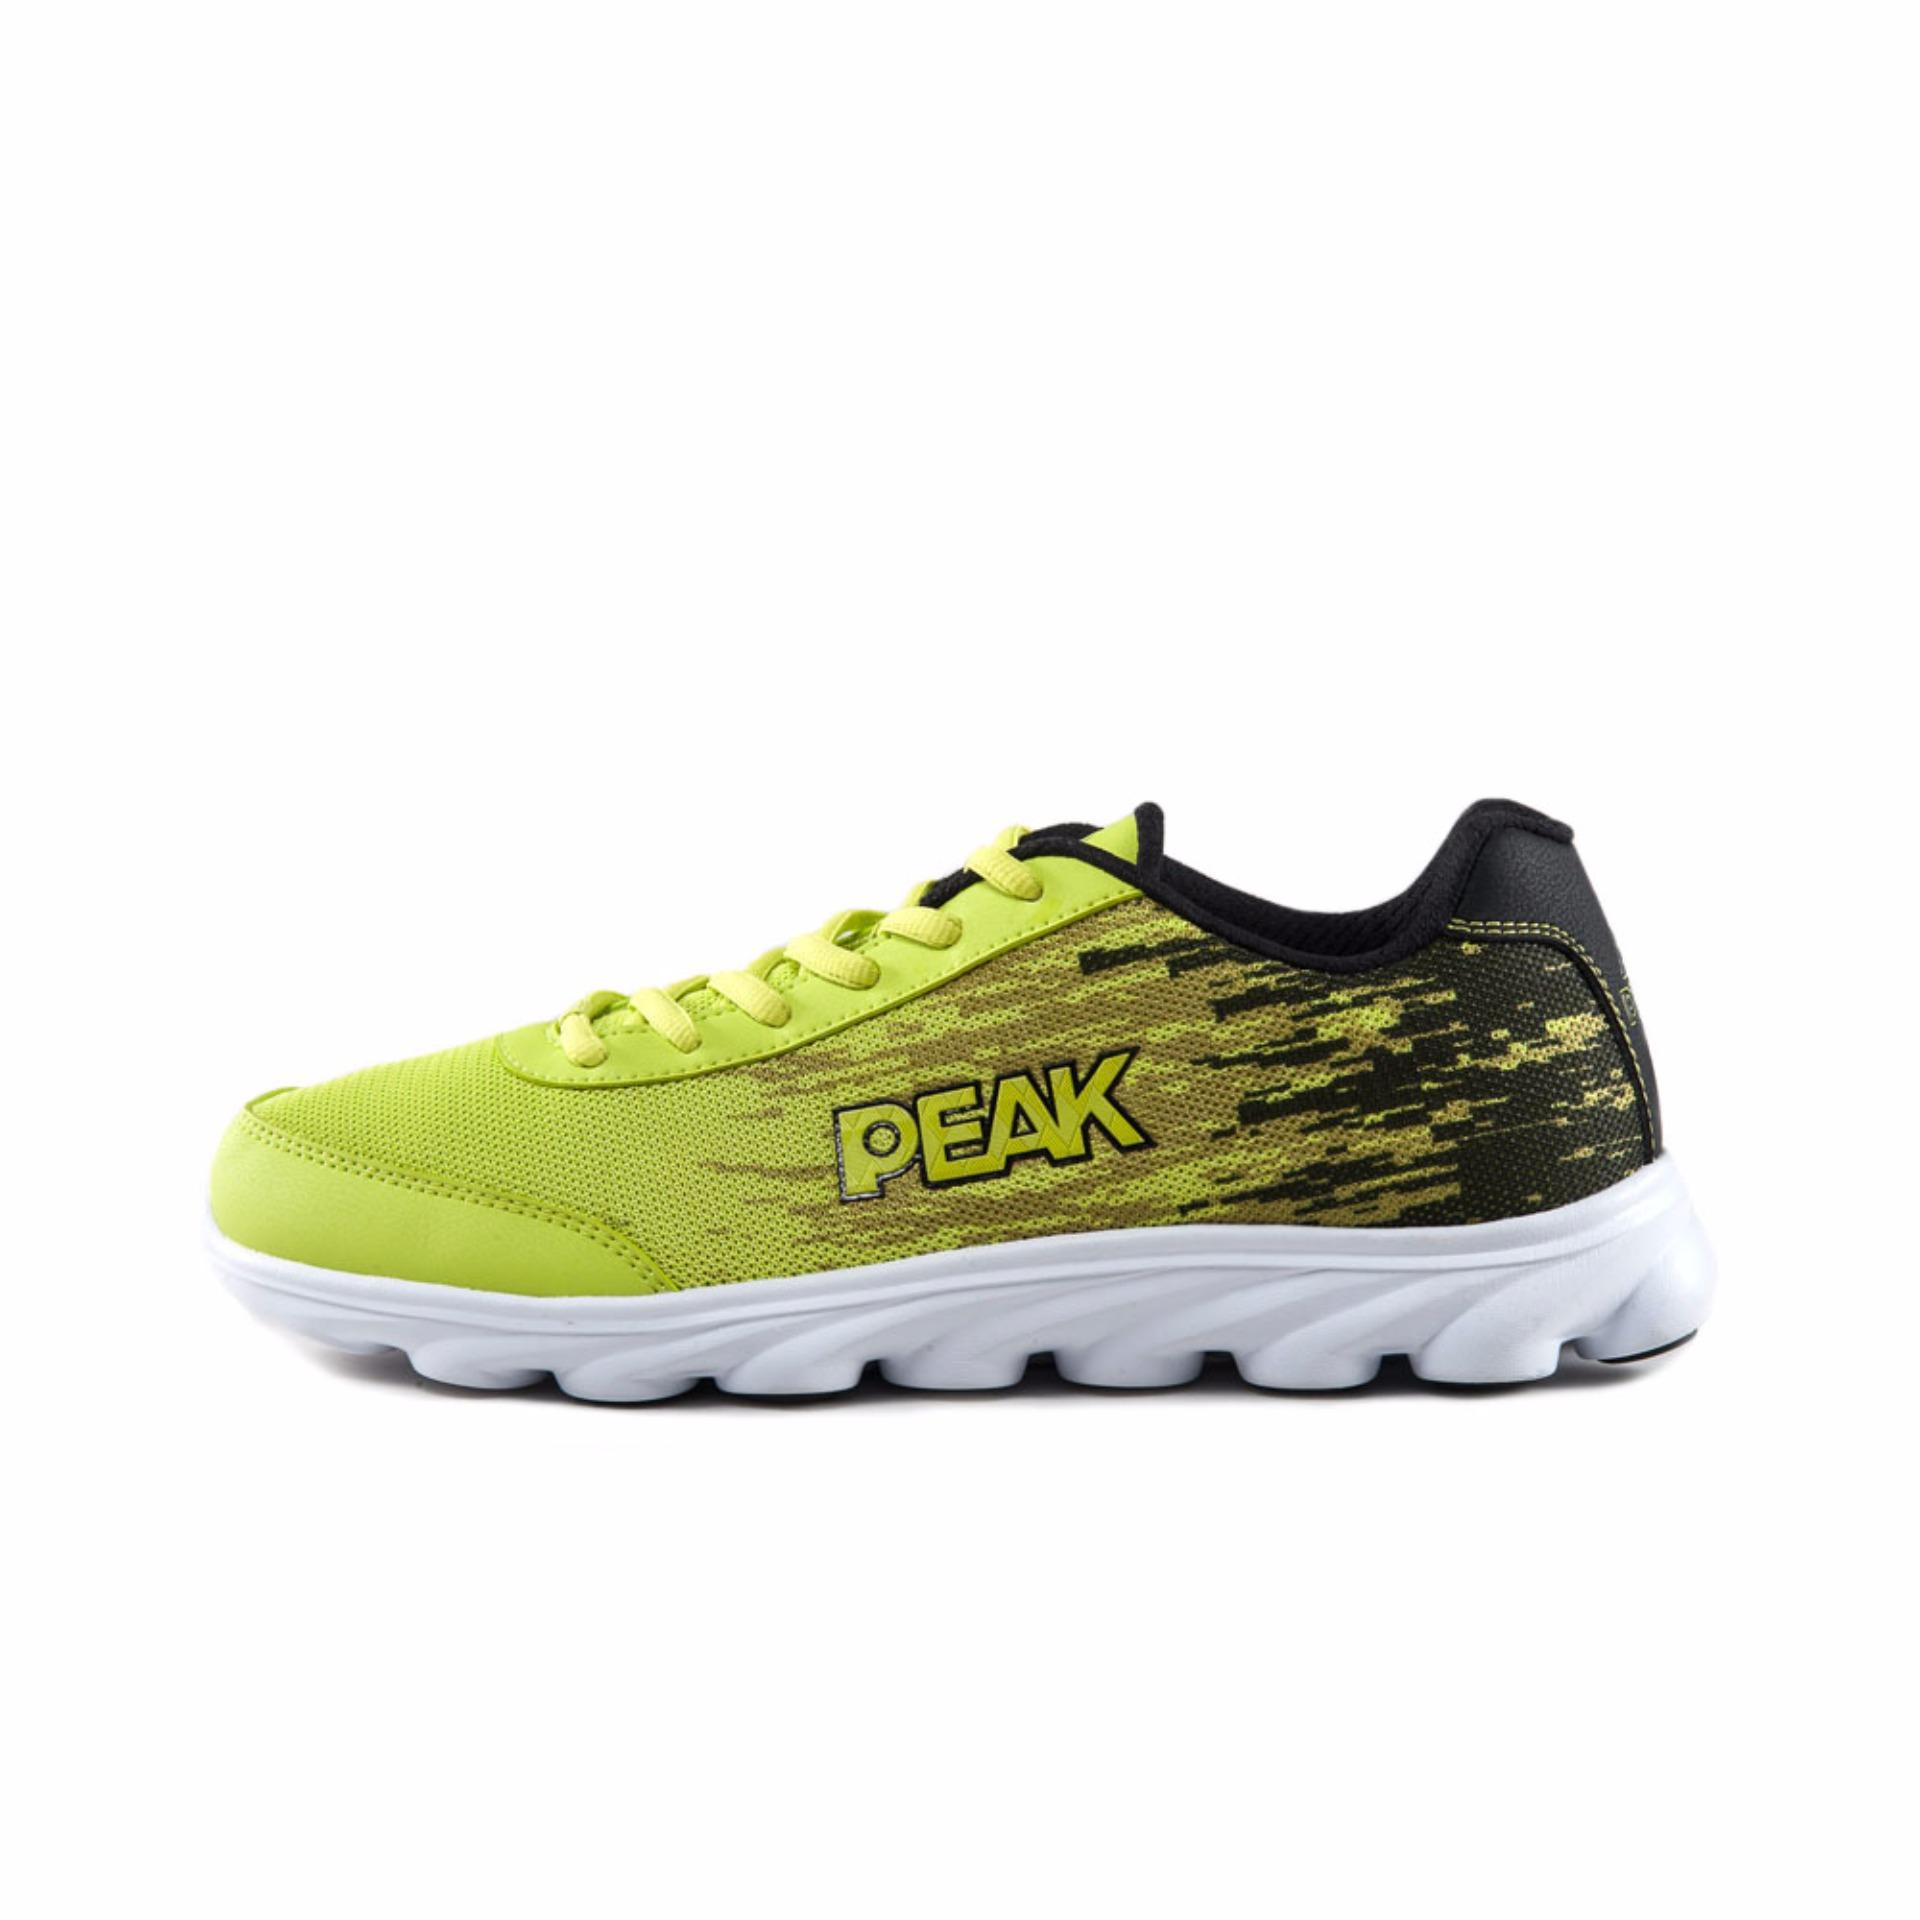 Peak E313021a Crossover I Edition Men Outdoor Basketballshoes Black Sepatu Basket Authentic Chalenger Real Sneakers E51041a Running E51057h Yellow